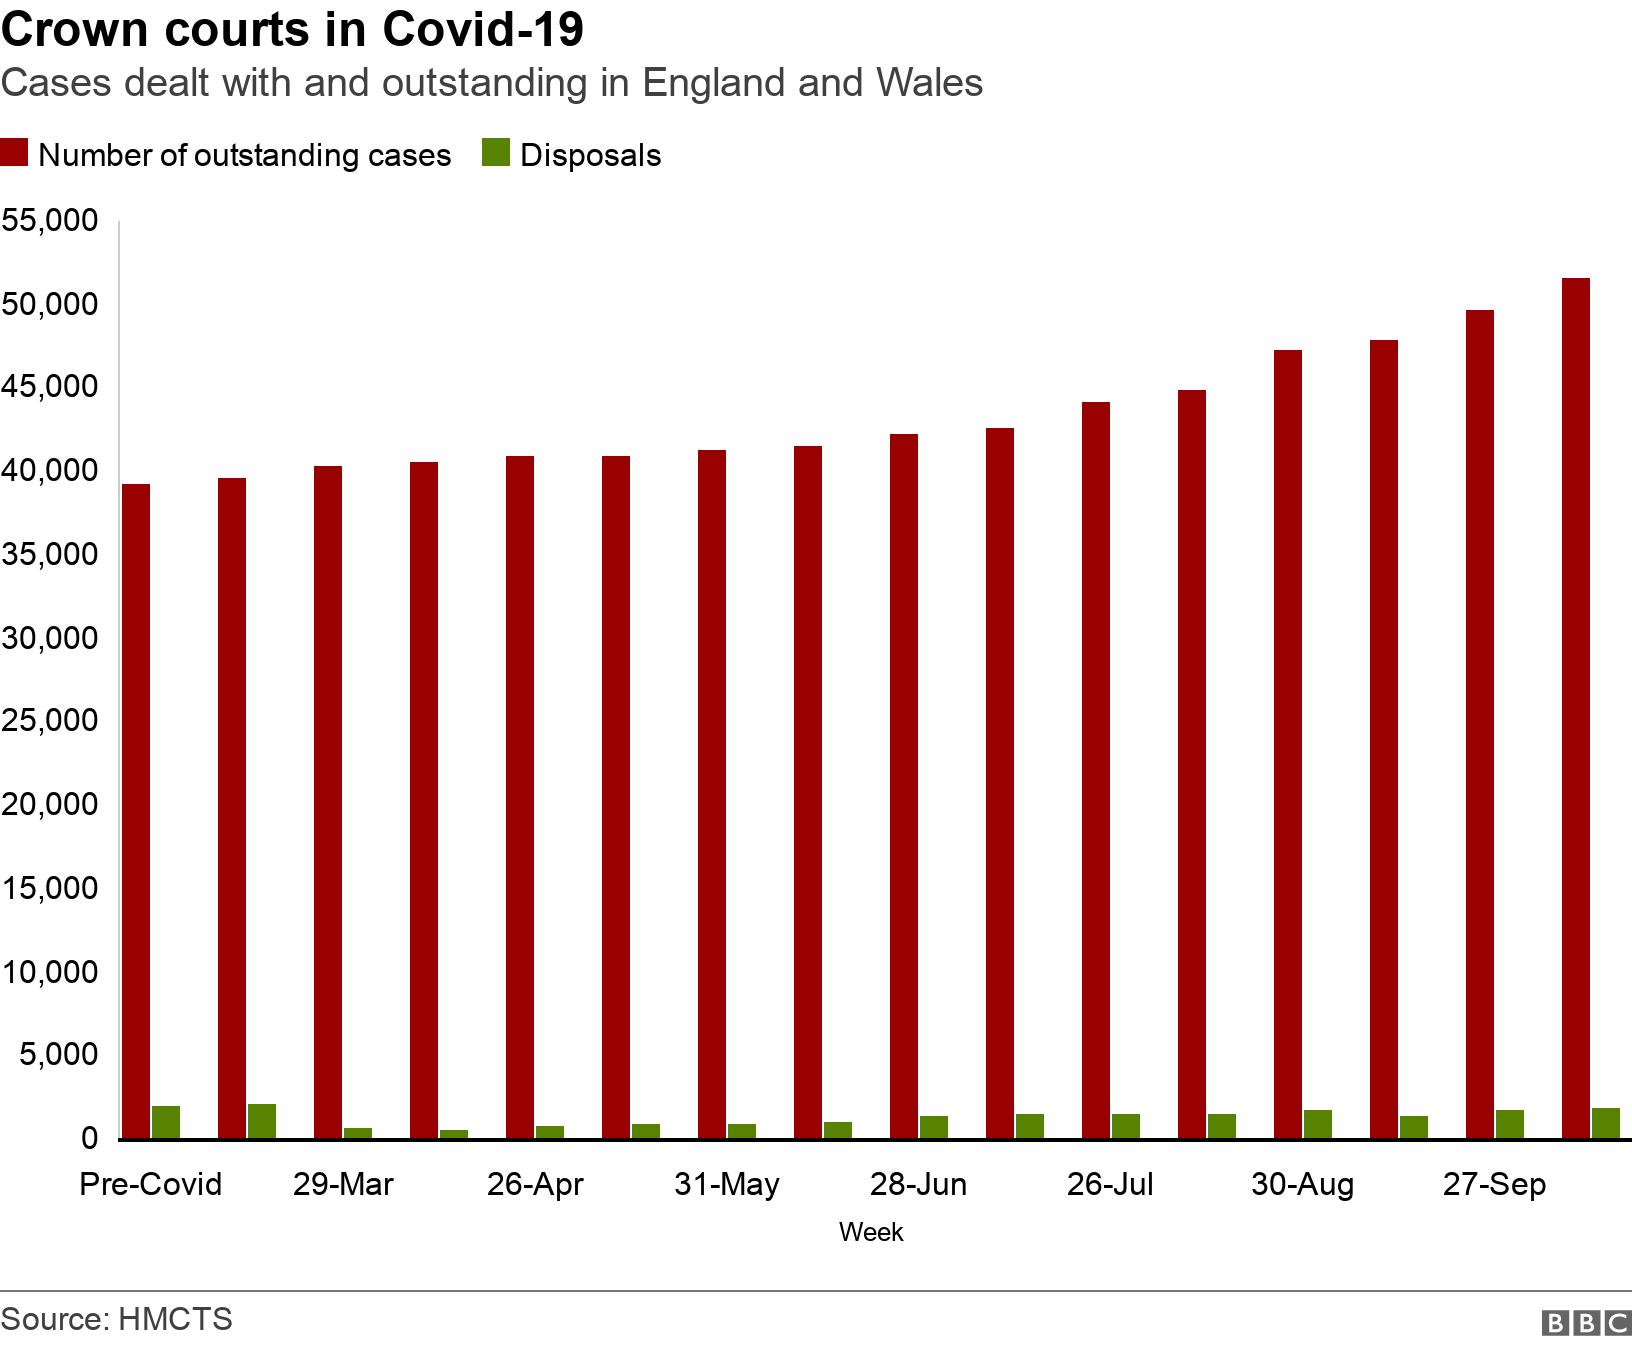 Crown courts in Covid-19. Cases dealt with and outstanding in England and Wales . Chart of the rise in outstanding cases verses disposals .